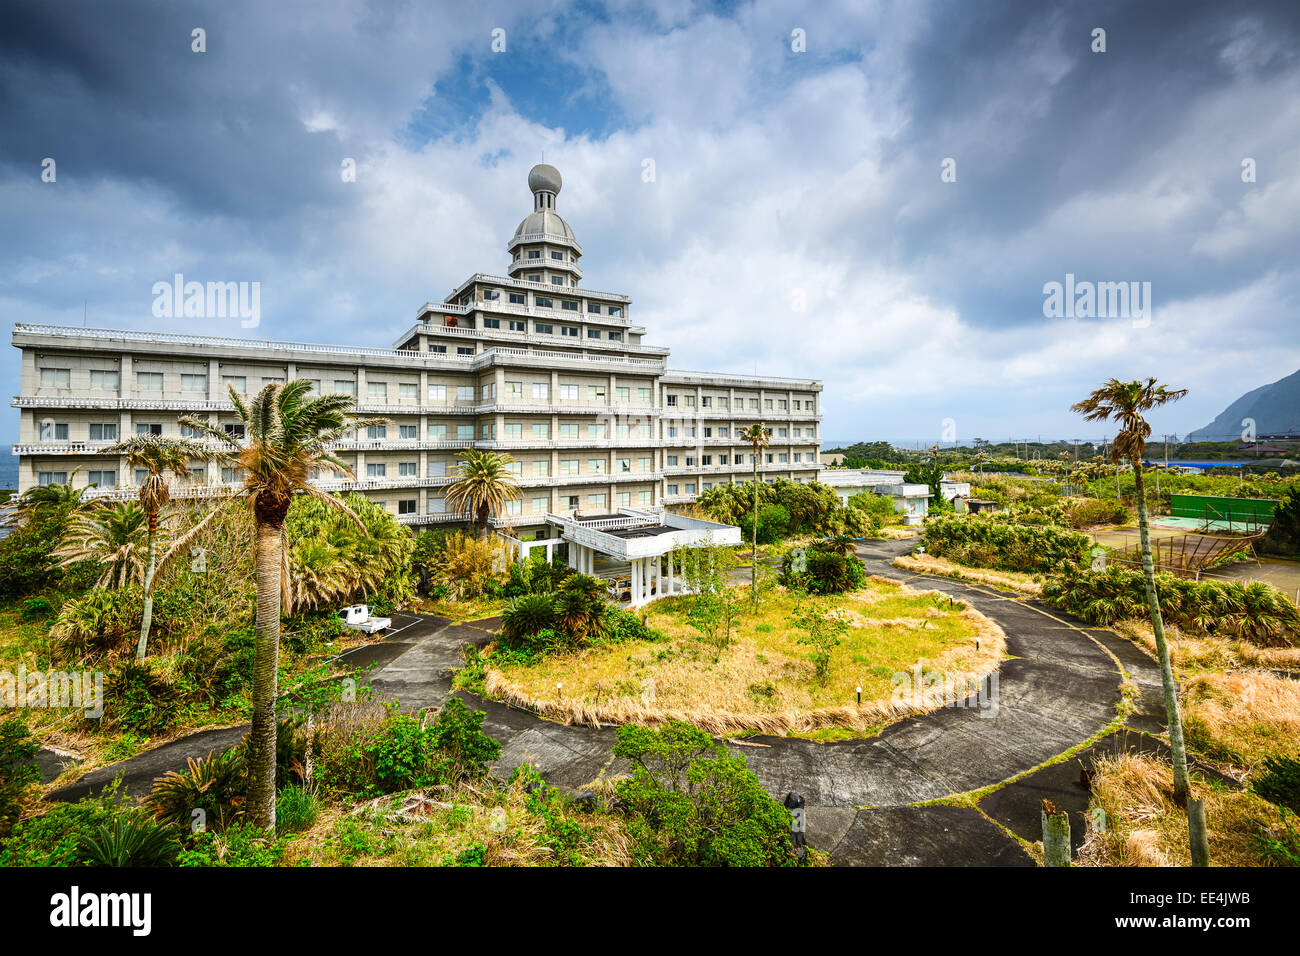 Abandoned hotel building ruins on Hachijojima Island, Japan. - Stock Image